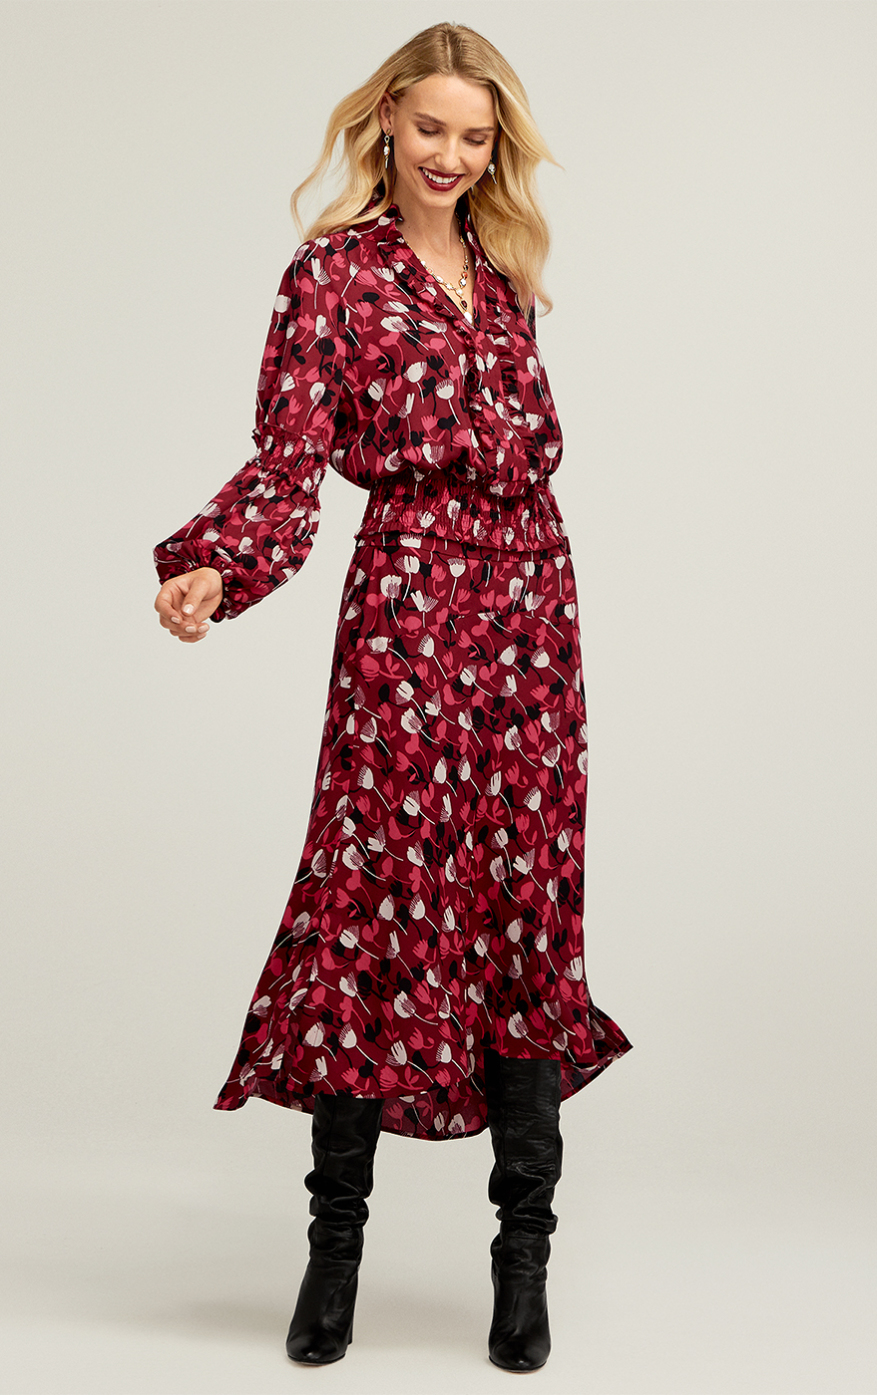 Corsage Blouse in Wine Blossom, Corsage Skirt in Wine Blossom